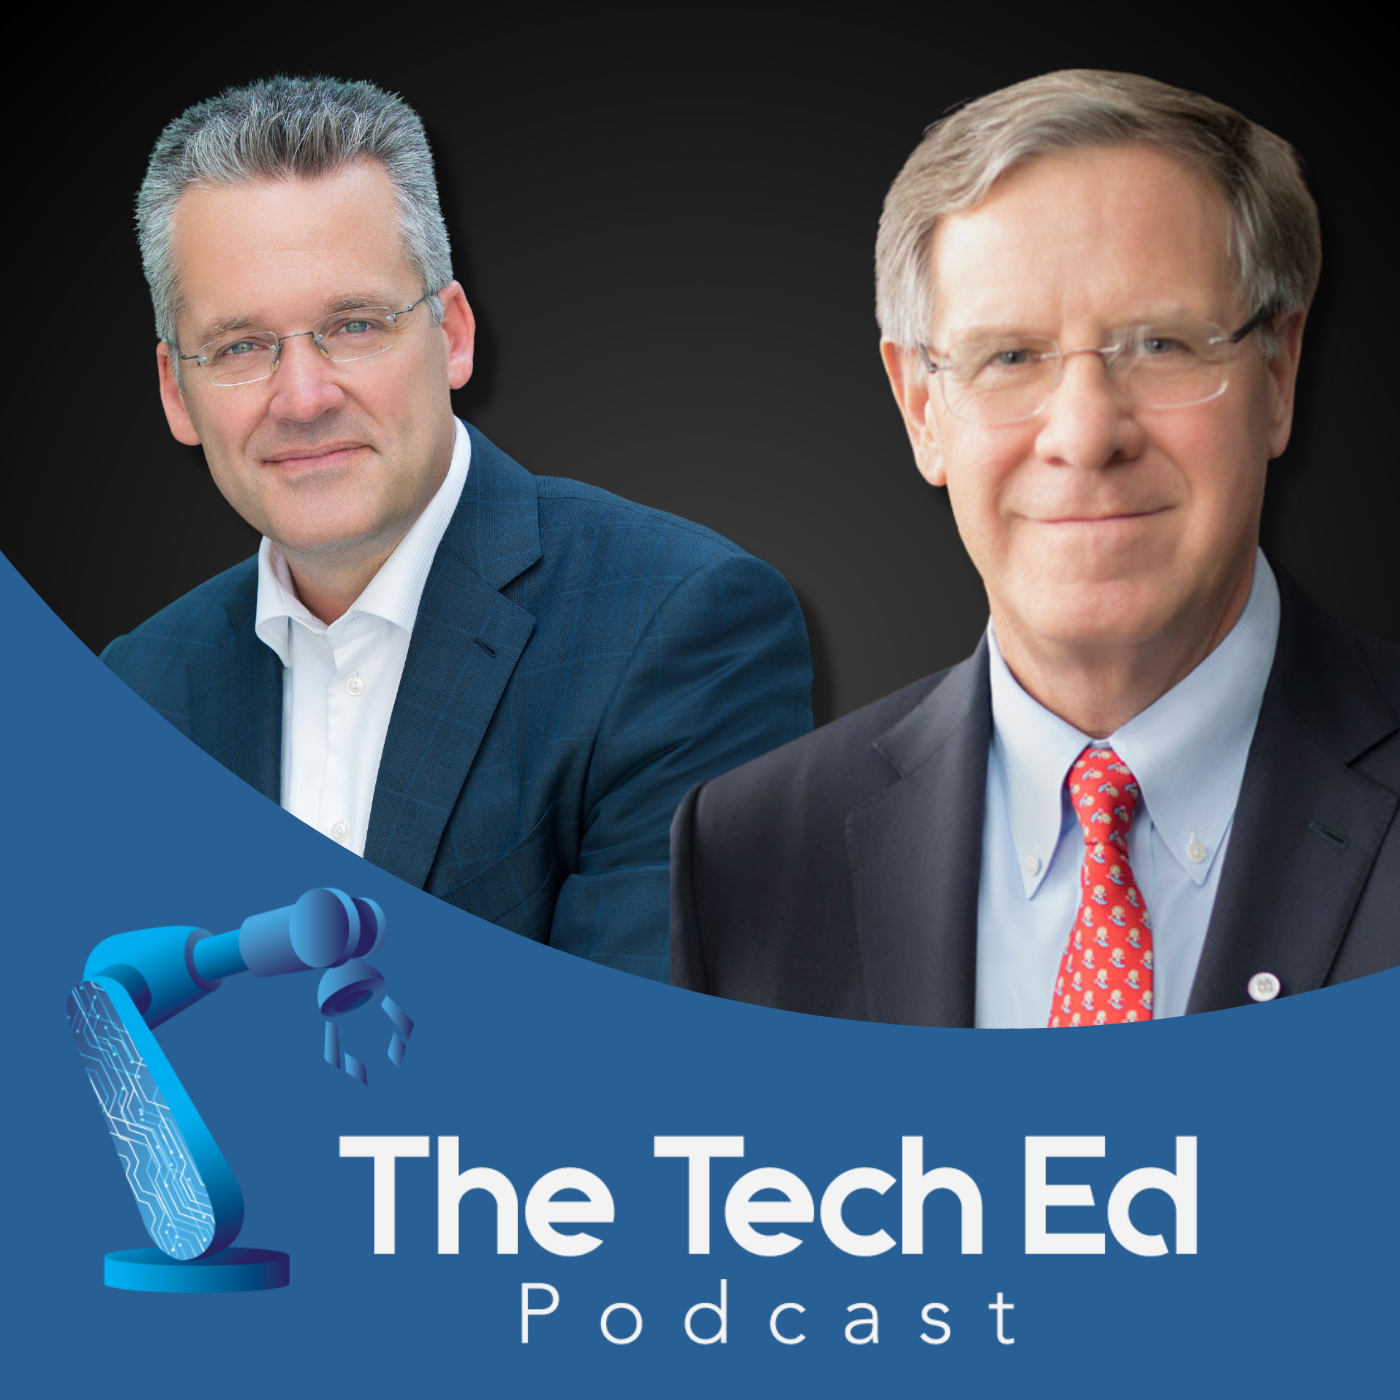 David Casper and Brett Pitts on The TechEd Podcast